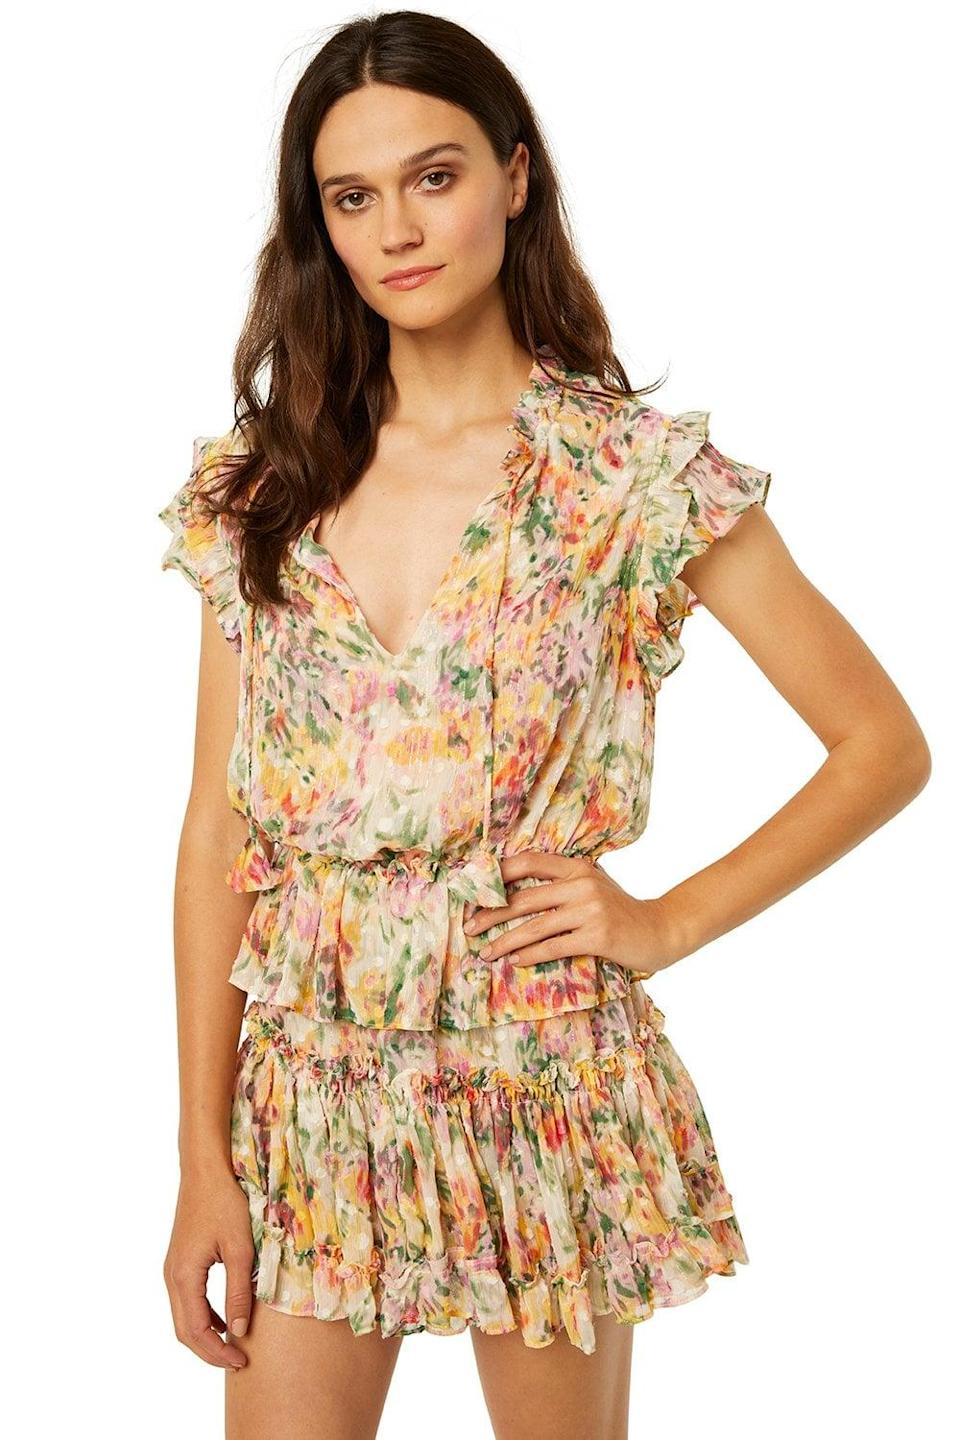 <p>Let me tell you, I just tried this <span>Misa Lilian Dress</span> ($350) on and it's officially the most flattering summer piece in my closet. If you think it's pretty online, wait until you see it in person - the shimmery threads are so pretty.</p>